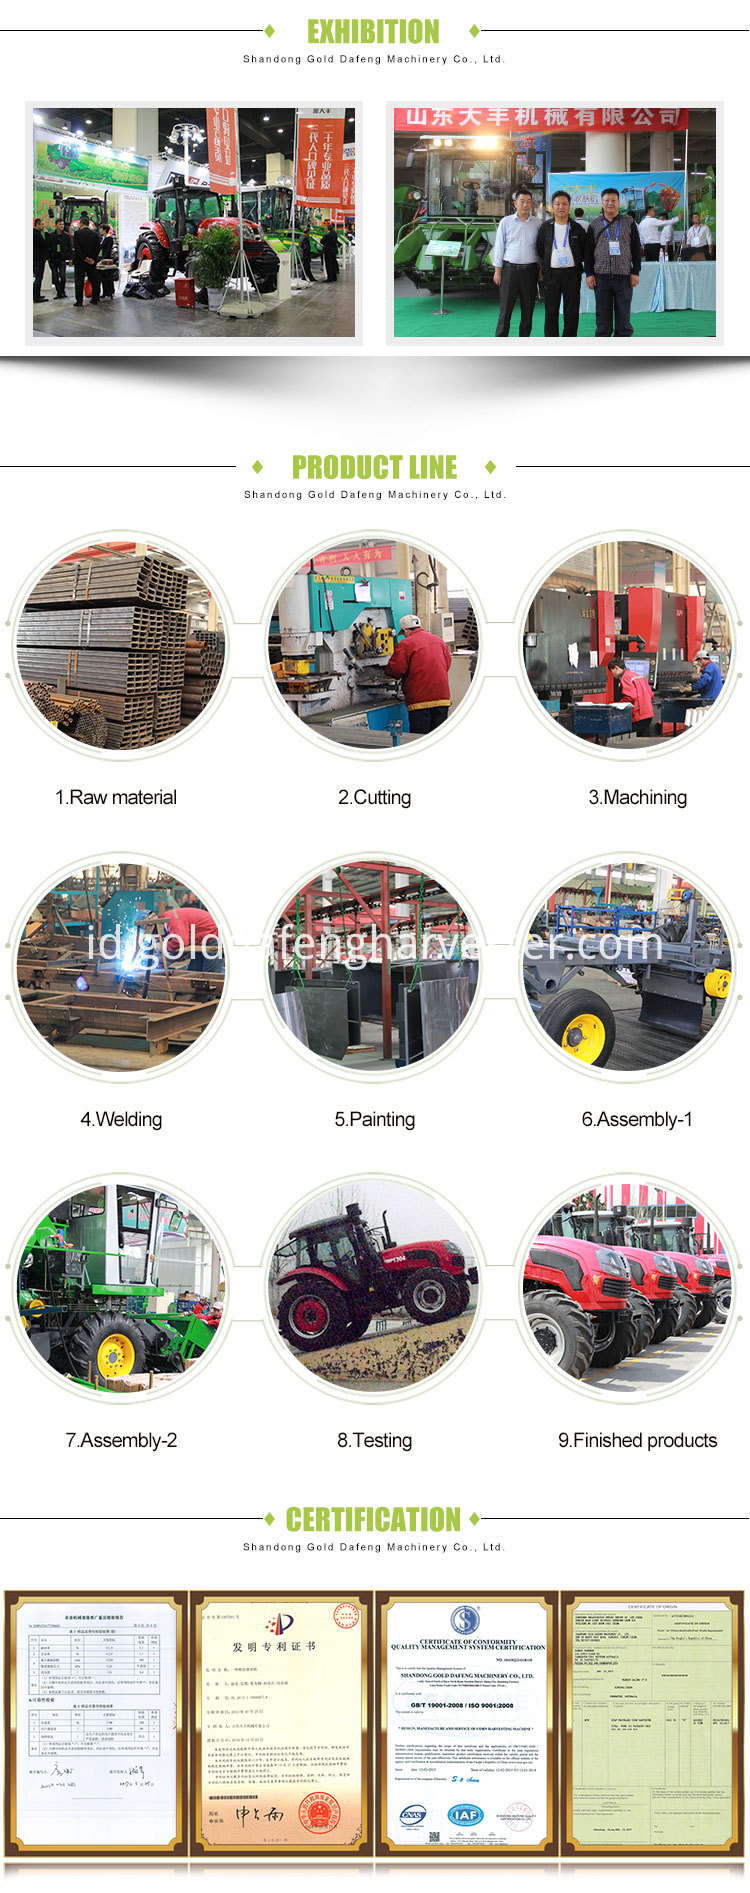 corn cutting machine process